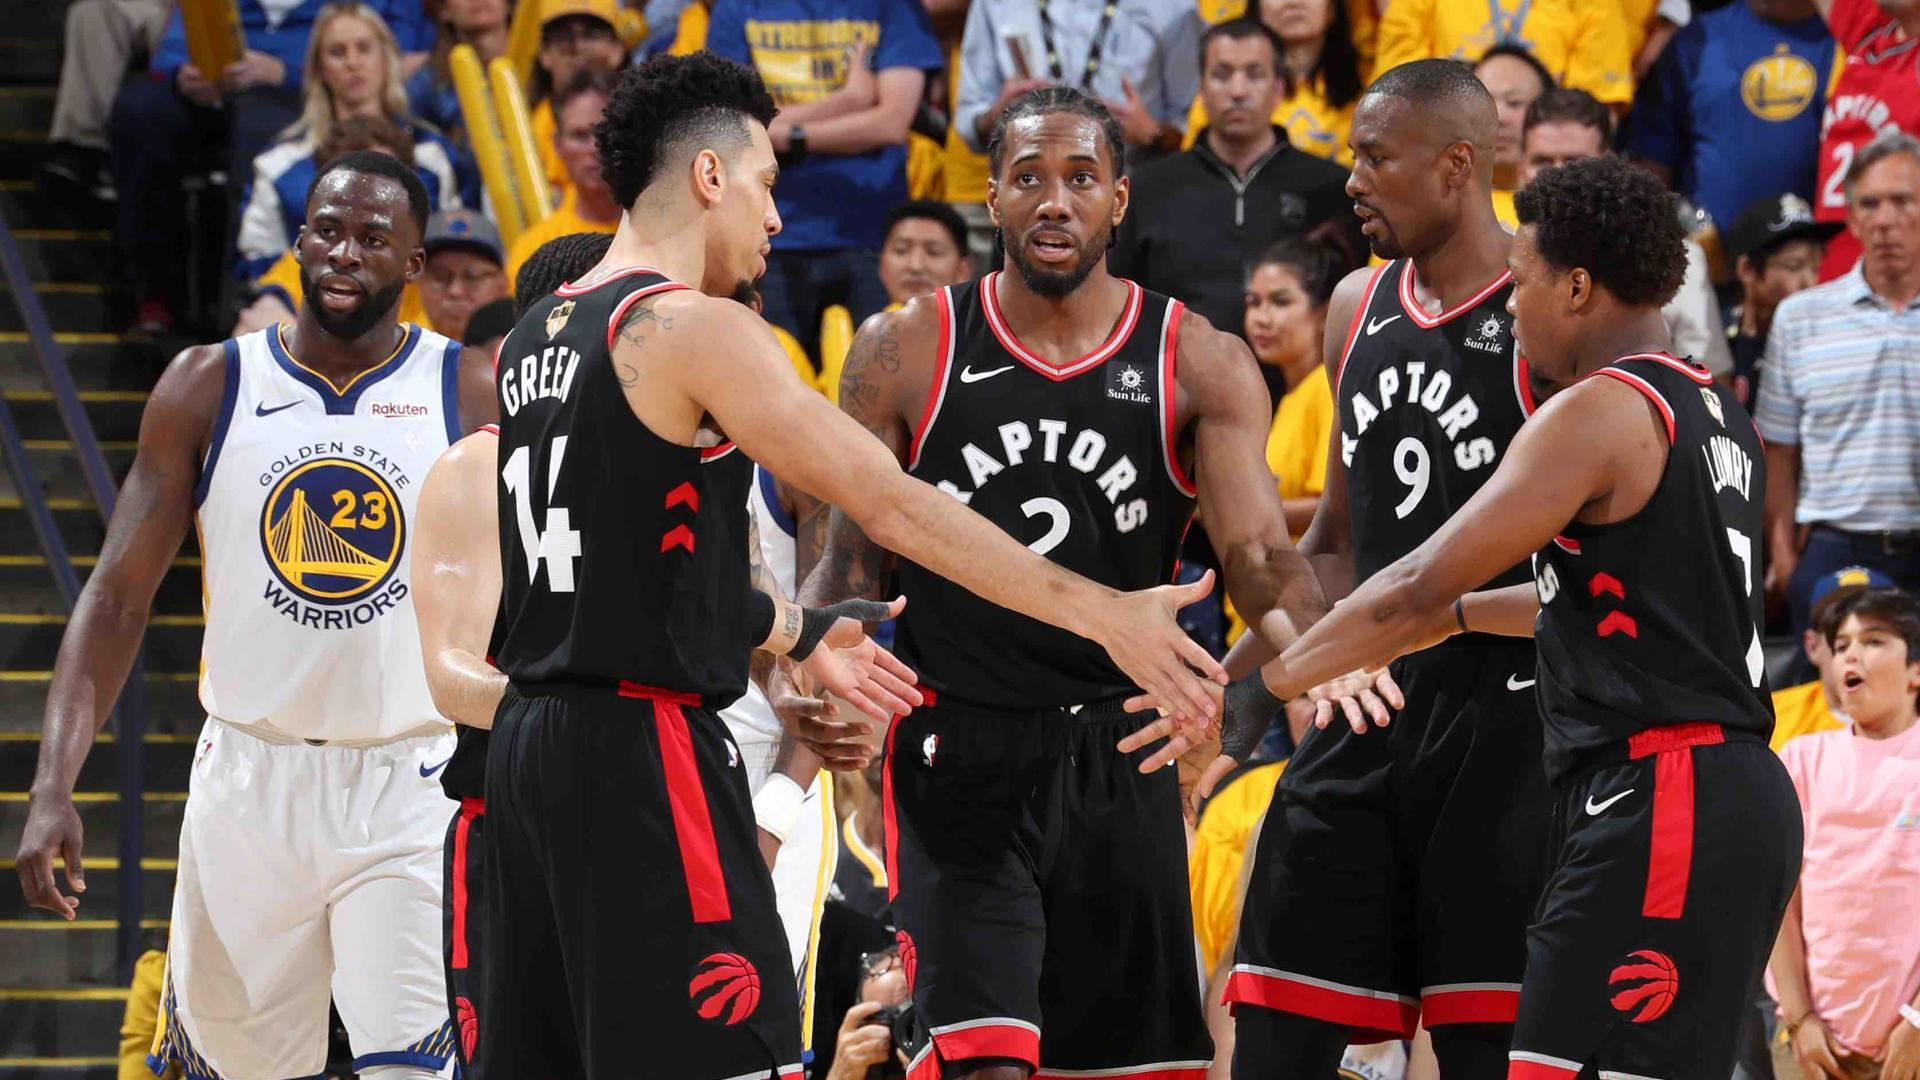 Raptors huddle after game 3 victory in Oracle Arena